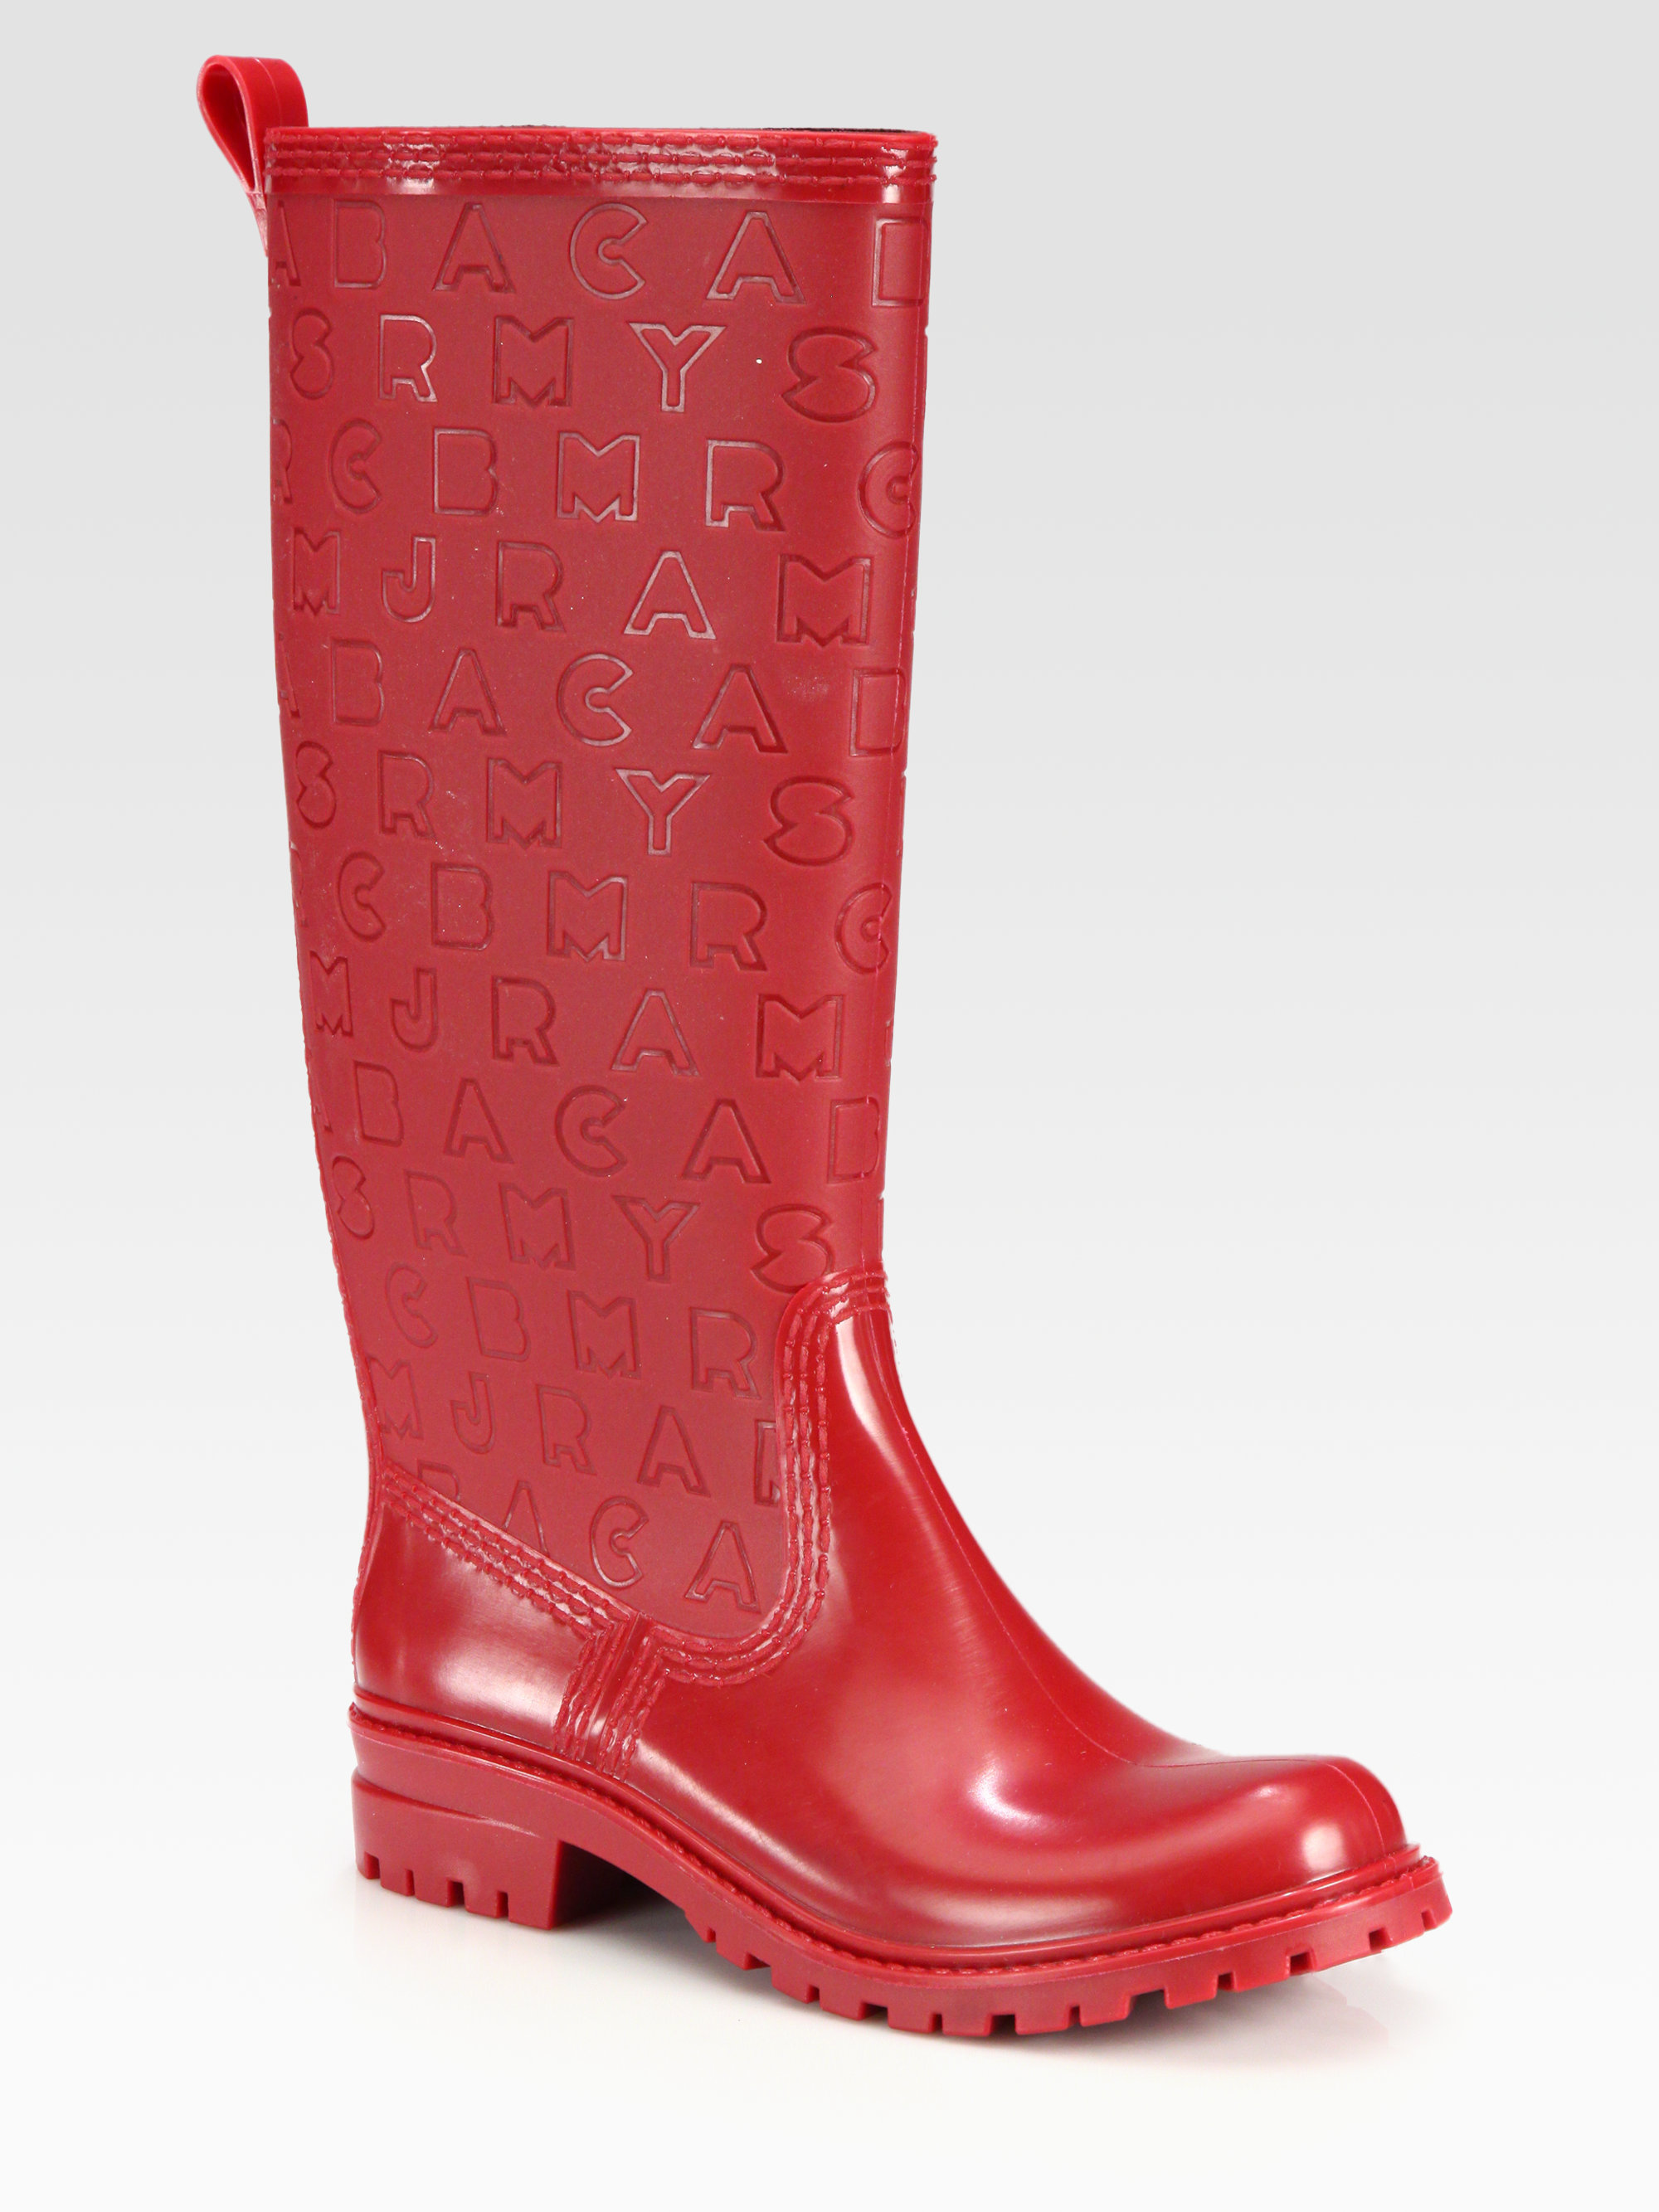 marc by marc jacobs logoembossed rain boots in pink lyst. Black Bedroom Furniture Sets. Home Design Ideas